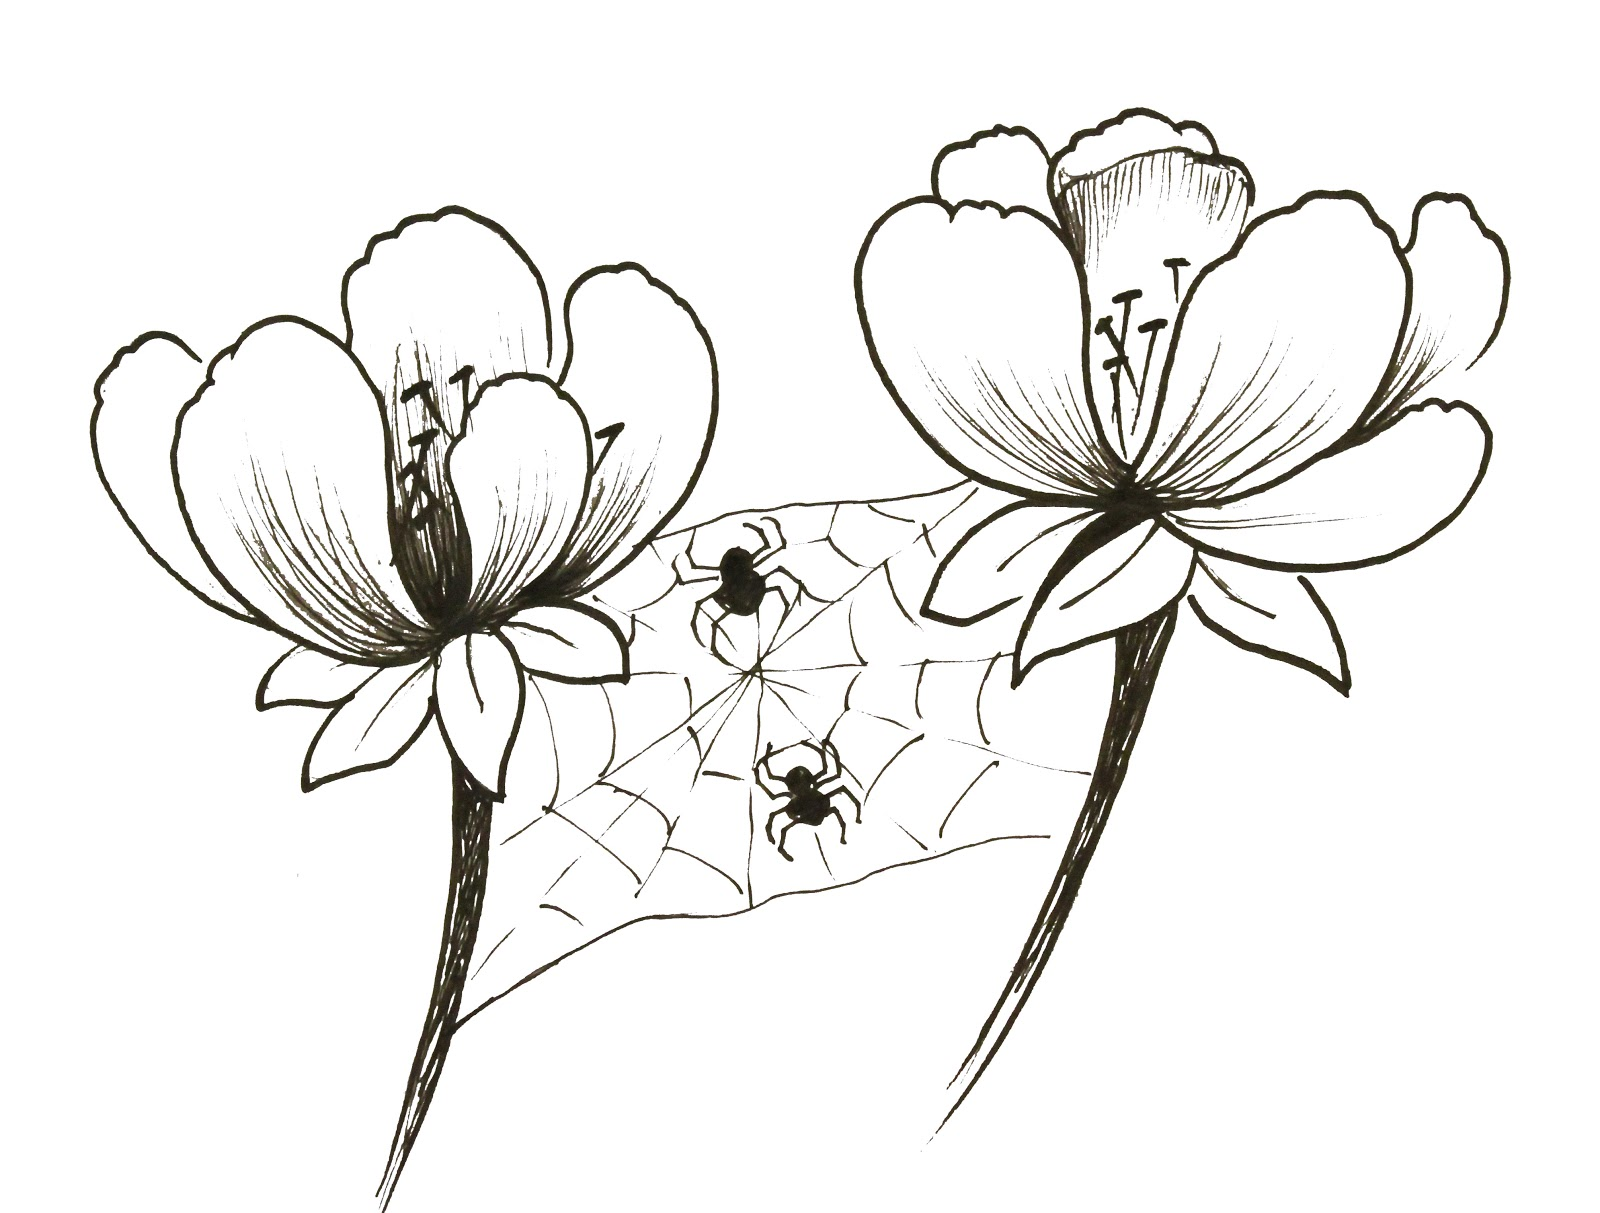 It's just an image of Zany Small Flower Drawing